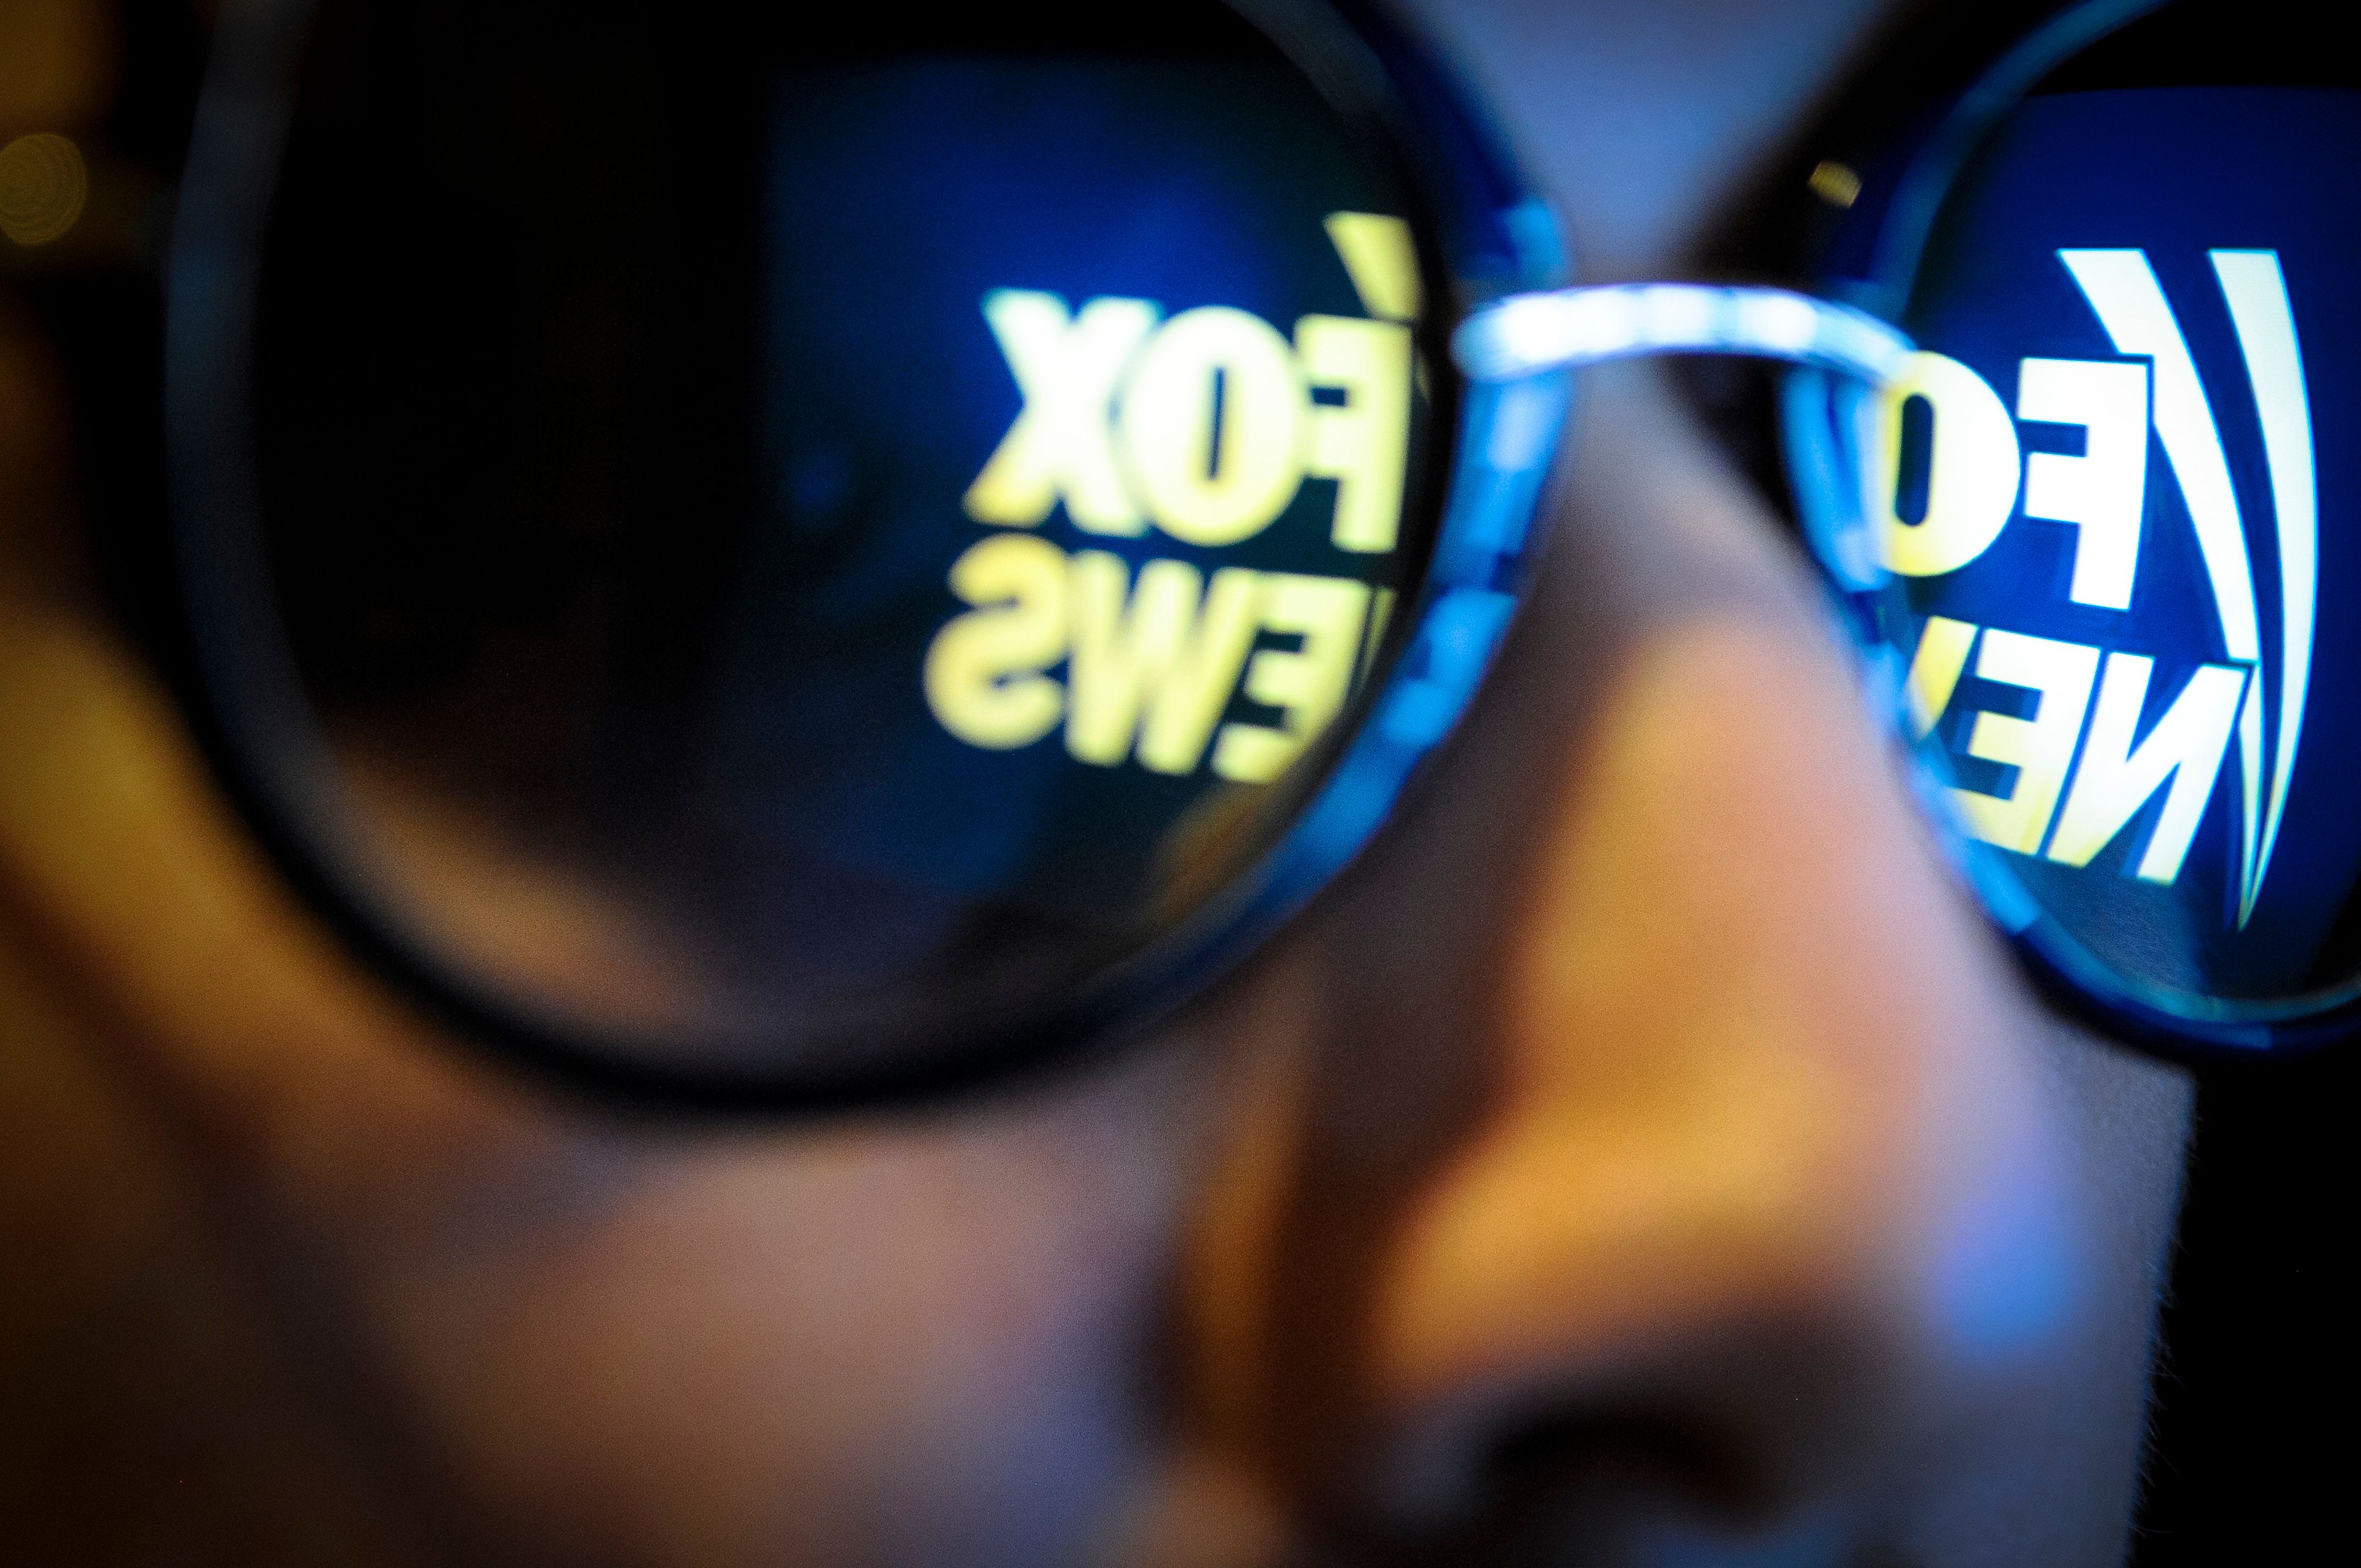 The Fox News logo is seen reflected in a pair of sunglasses on November 3, 2017. (Photo by Jaap Arriens/NurPhoto via Getty Images)